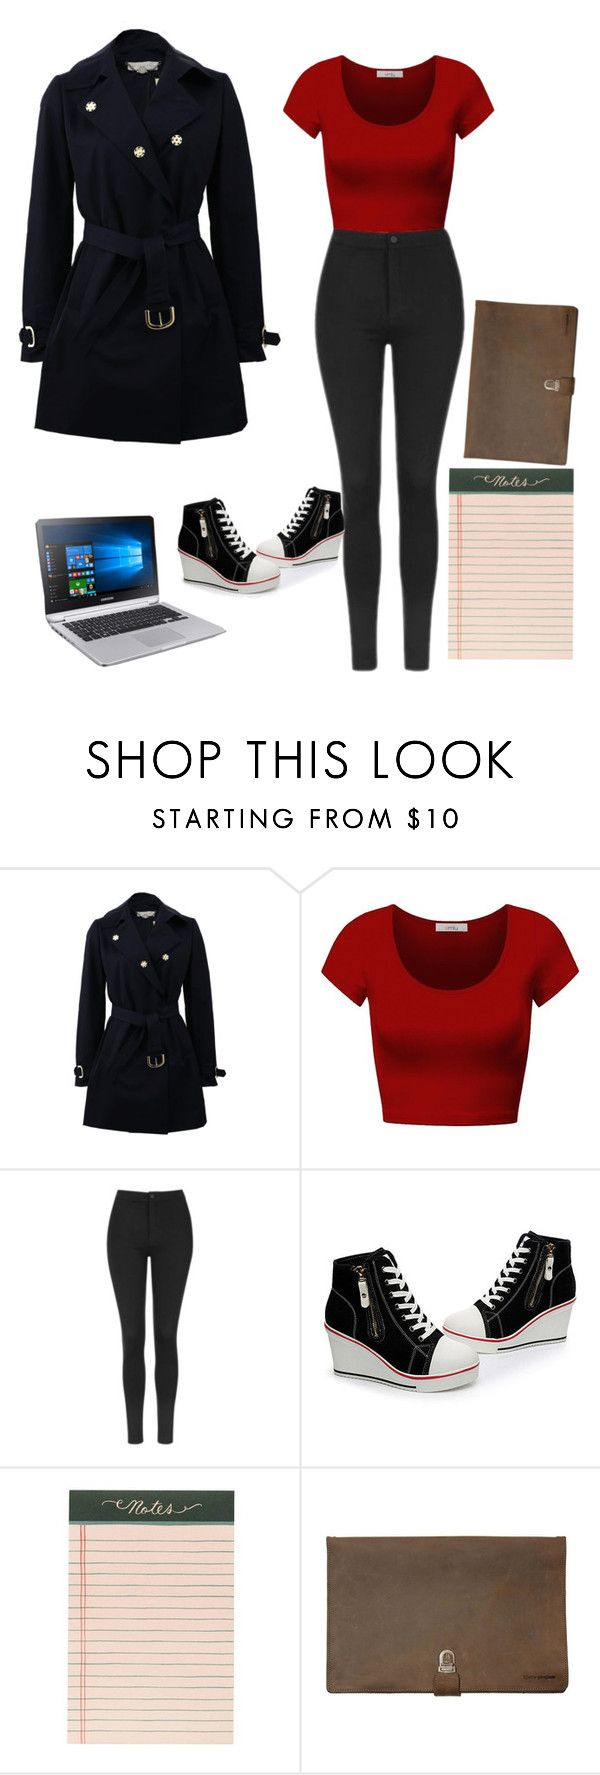 """""""Meeting~Davina"""" by coffeeismysoul ❤ liked on Polyvore featuring STELLA McCARTNEY, DK, Topshop, Rifle Paper Co and Kjøre Project"""